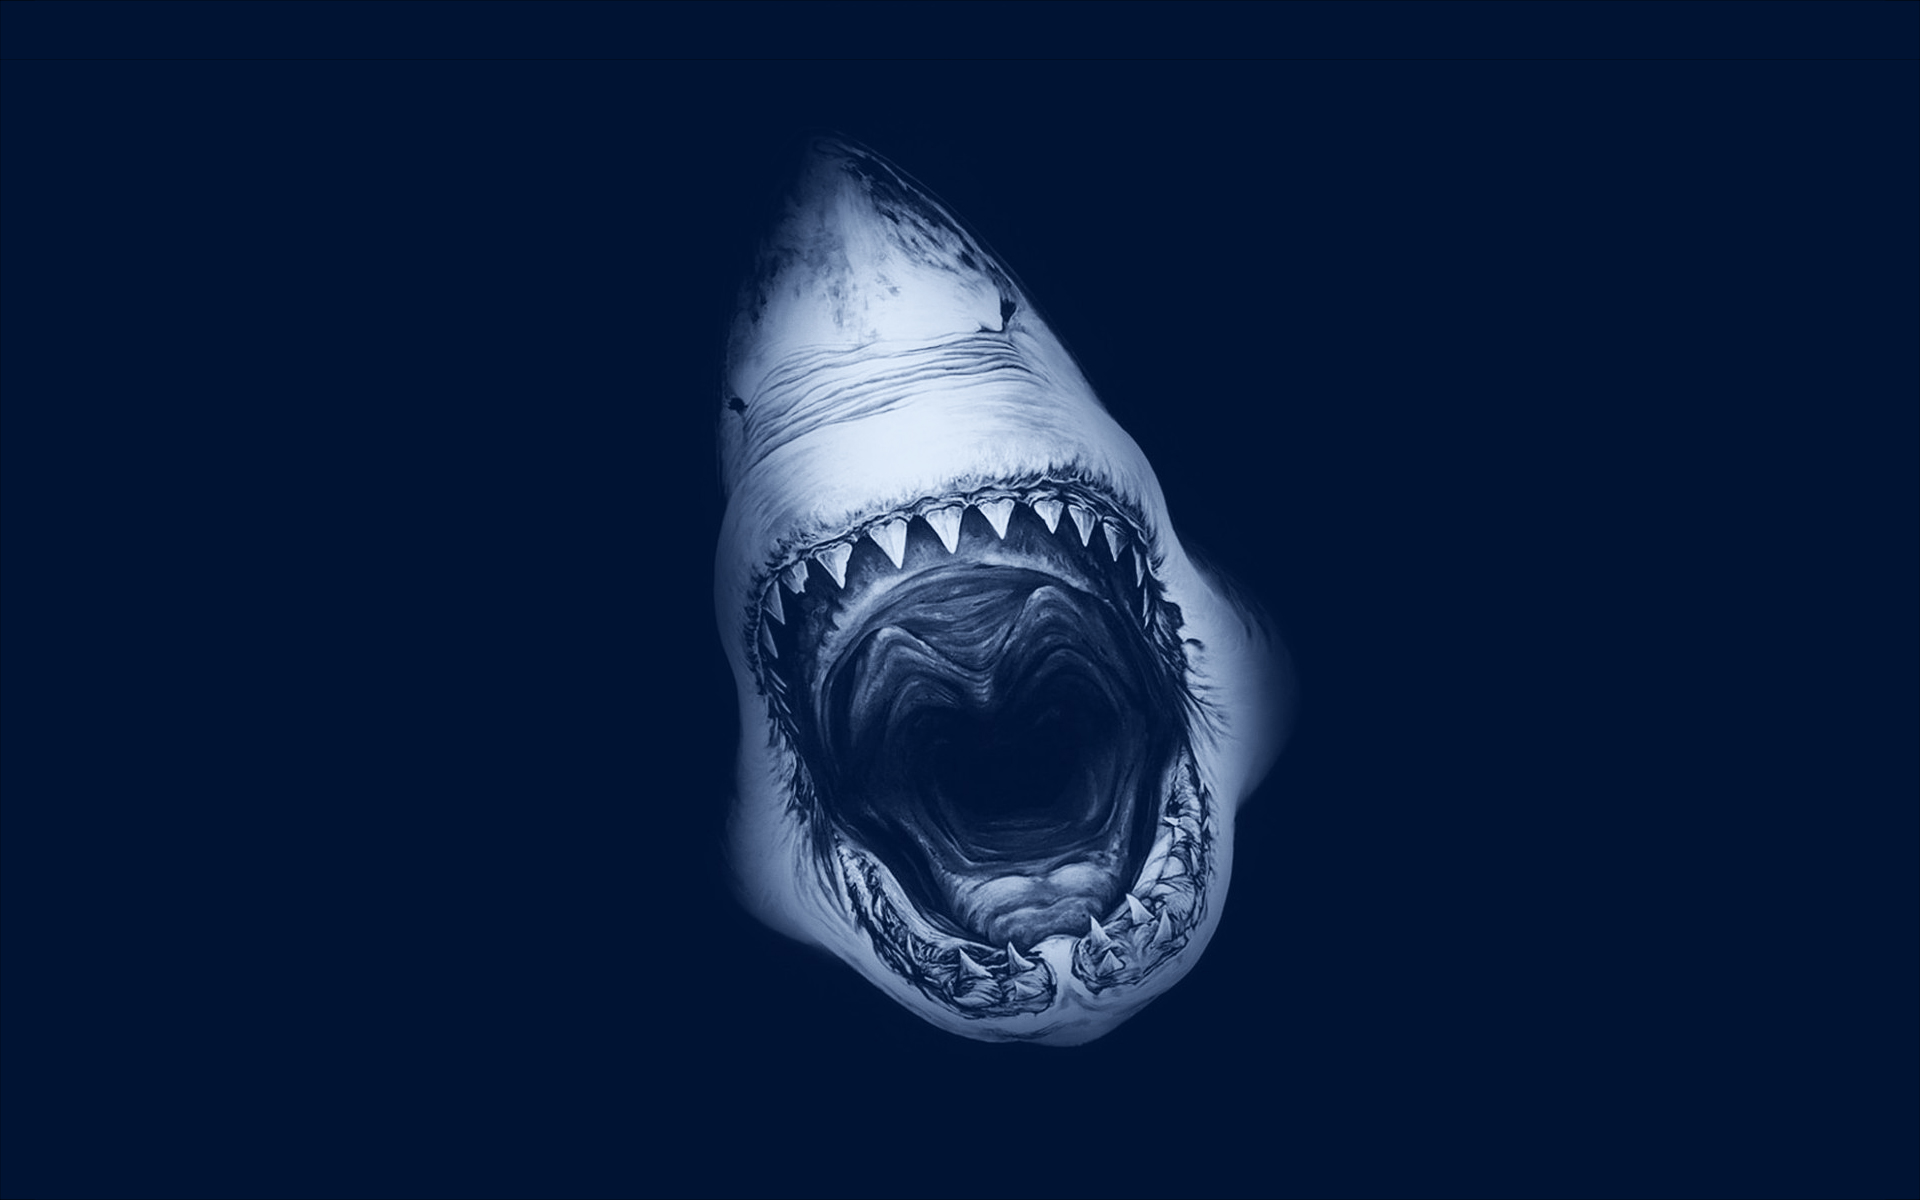 Shark attack art